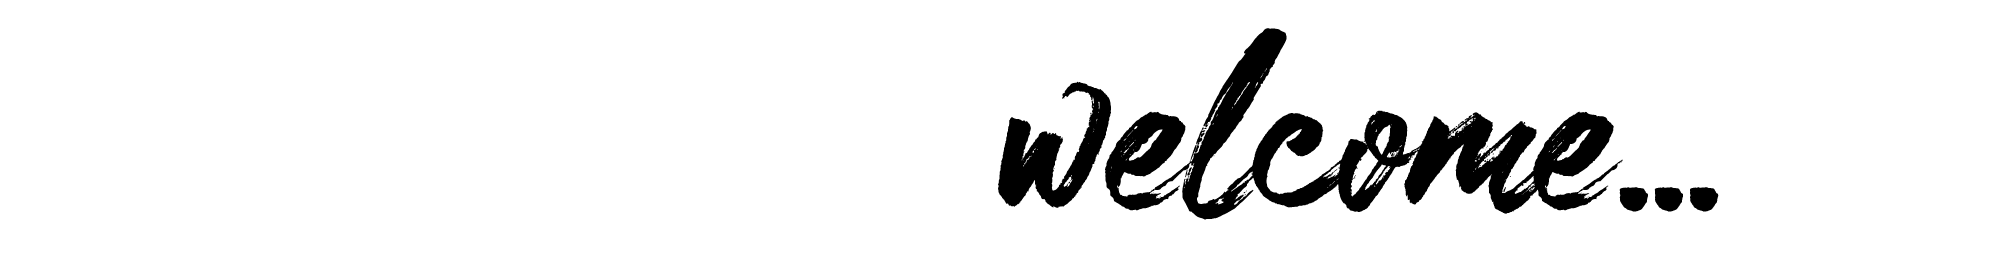 StartHere-Banner-Label.png